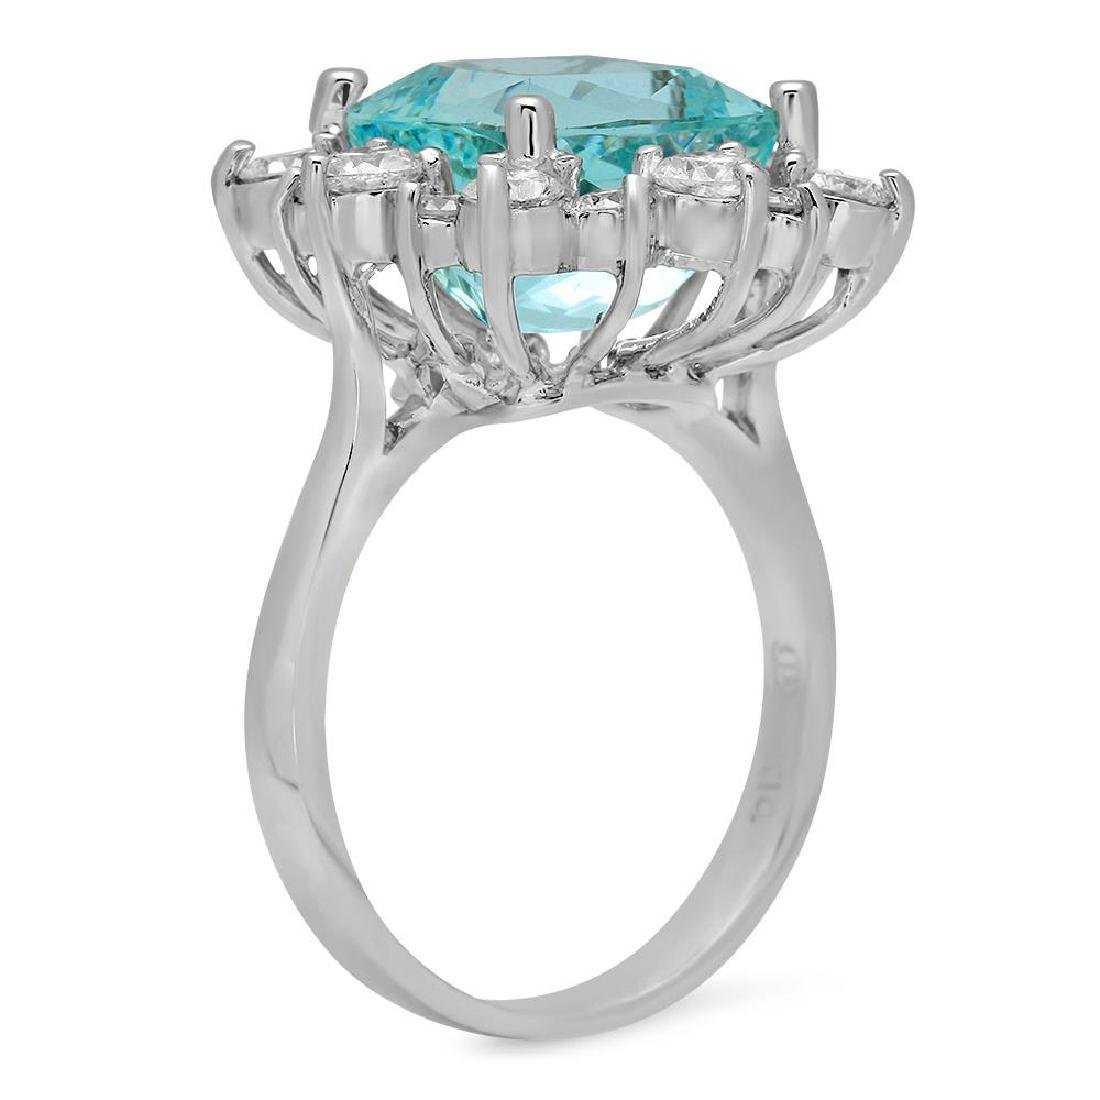 14K Gold 5.79ct Aquamarine 1.44ct Diamond Ring - 2